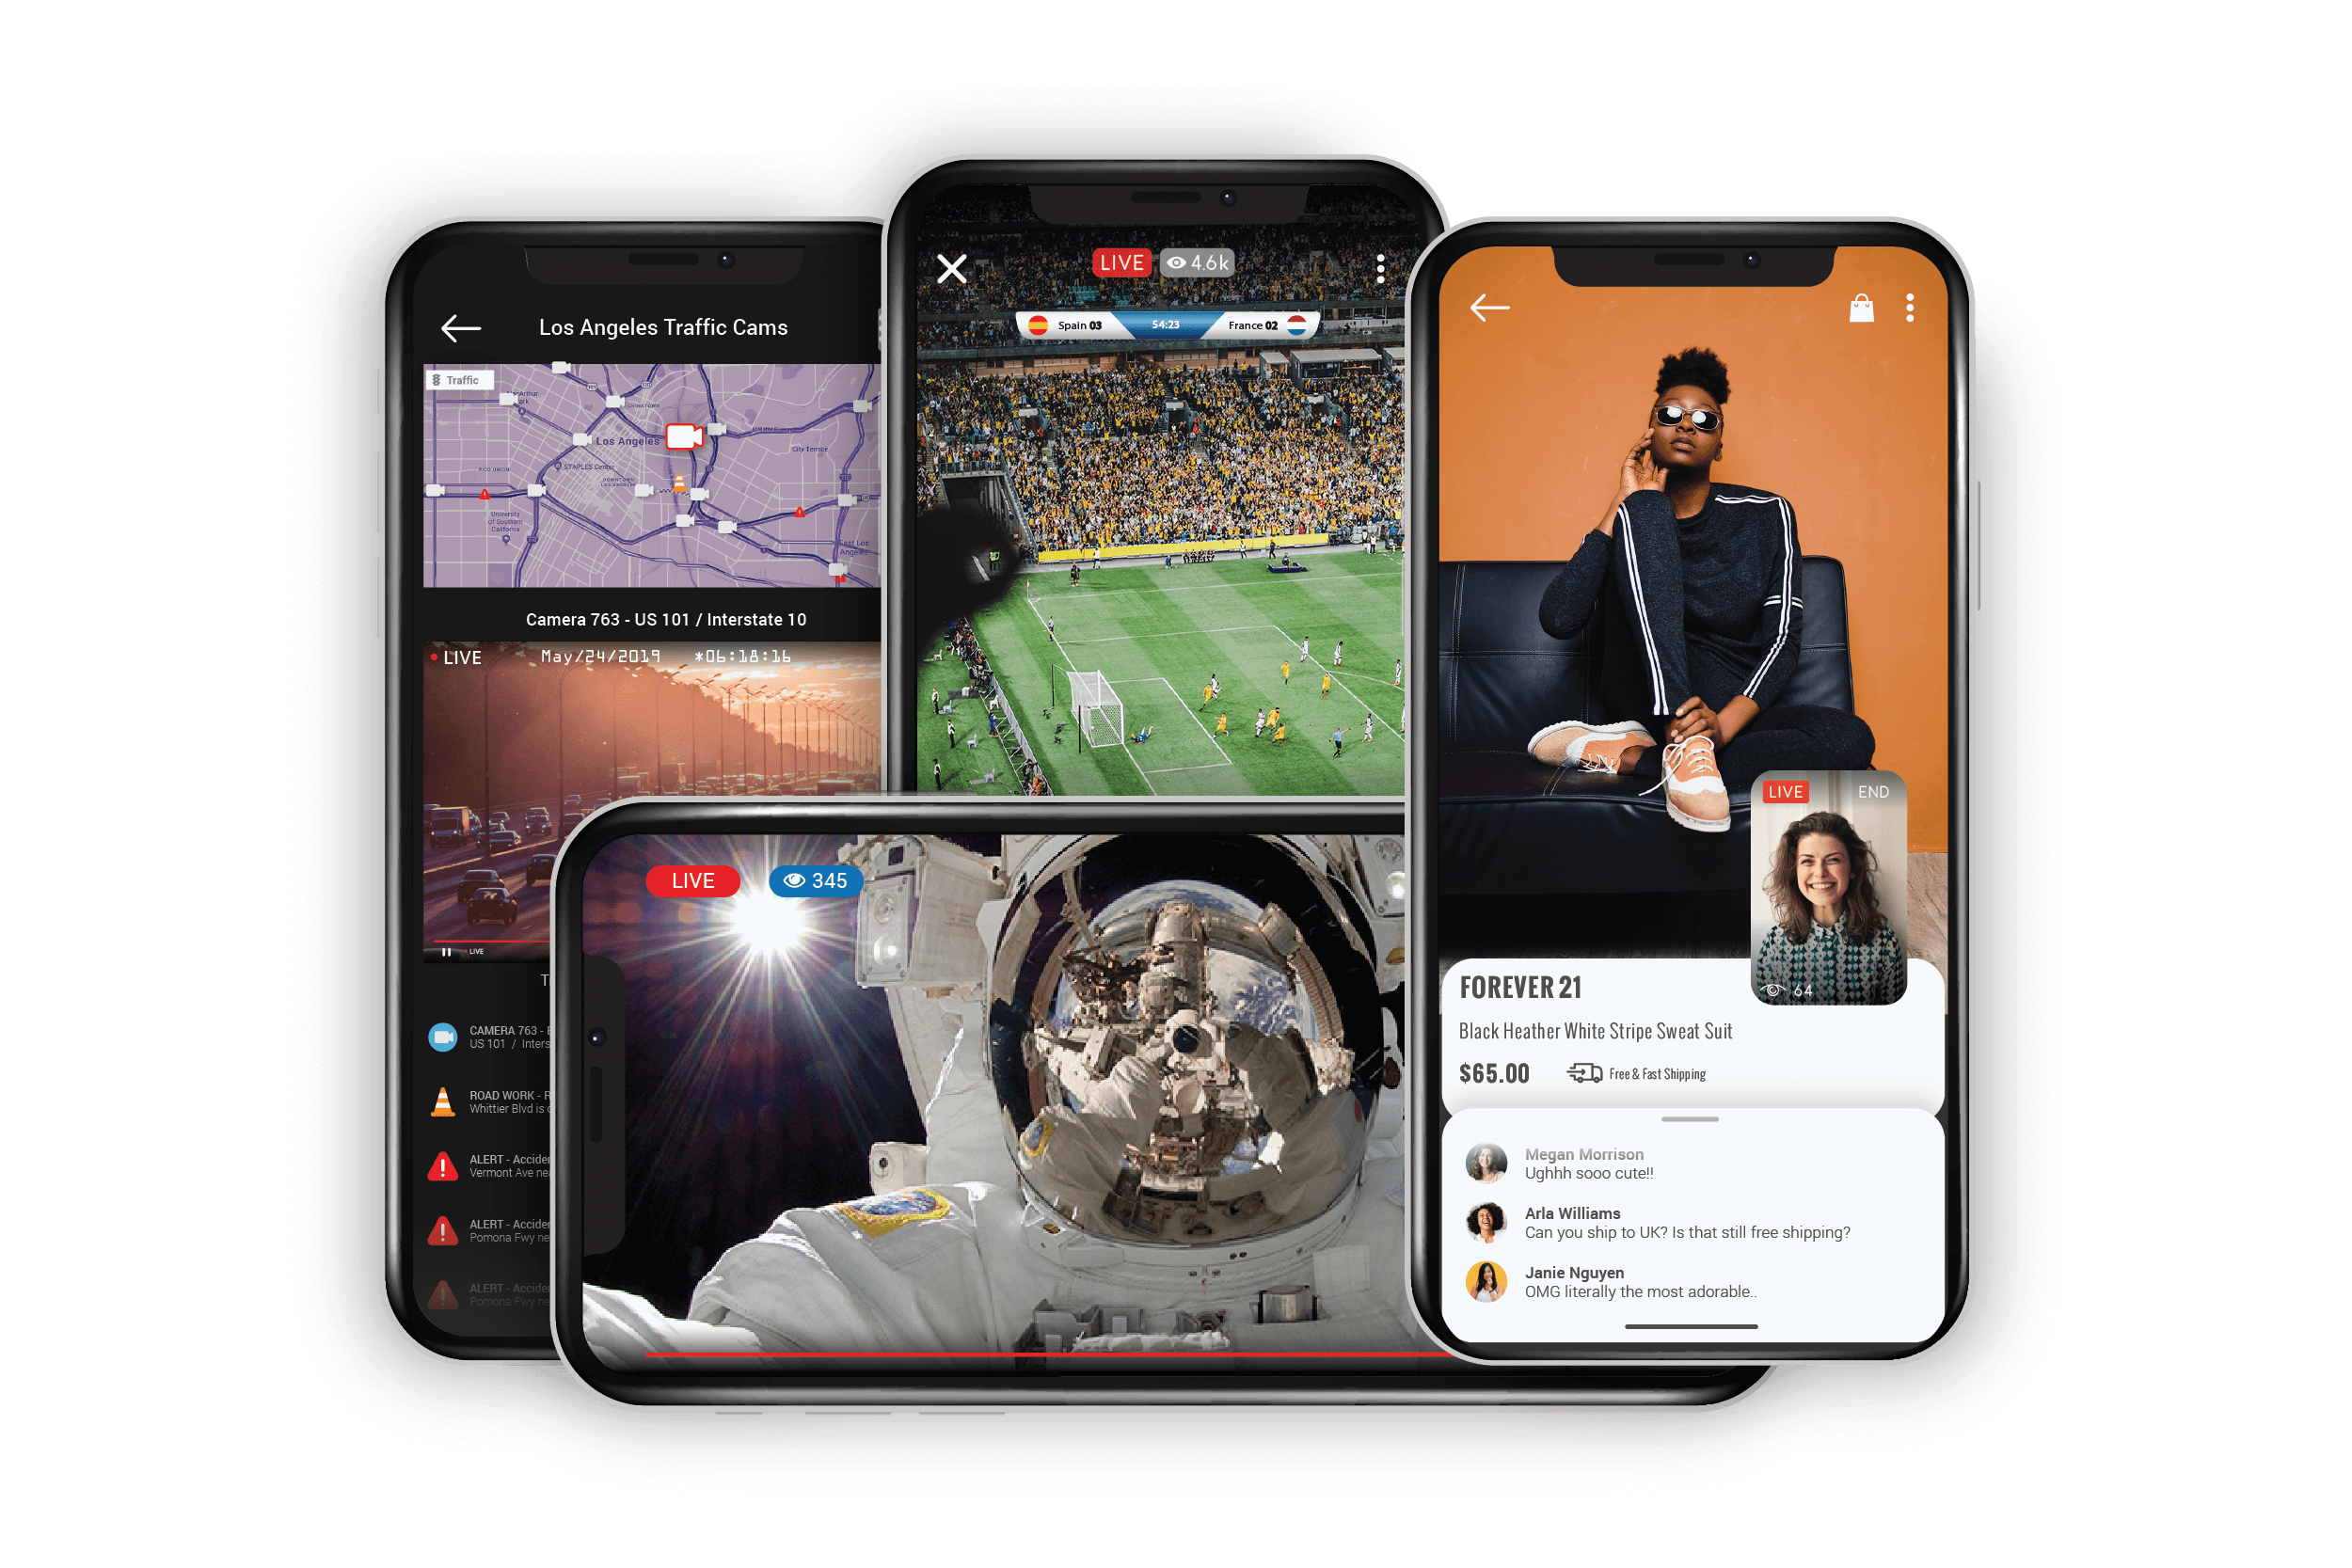 Live video mobile apps - traffic app, sports app, live streaming app, live commerce app